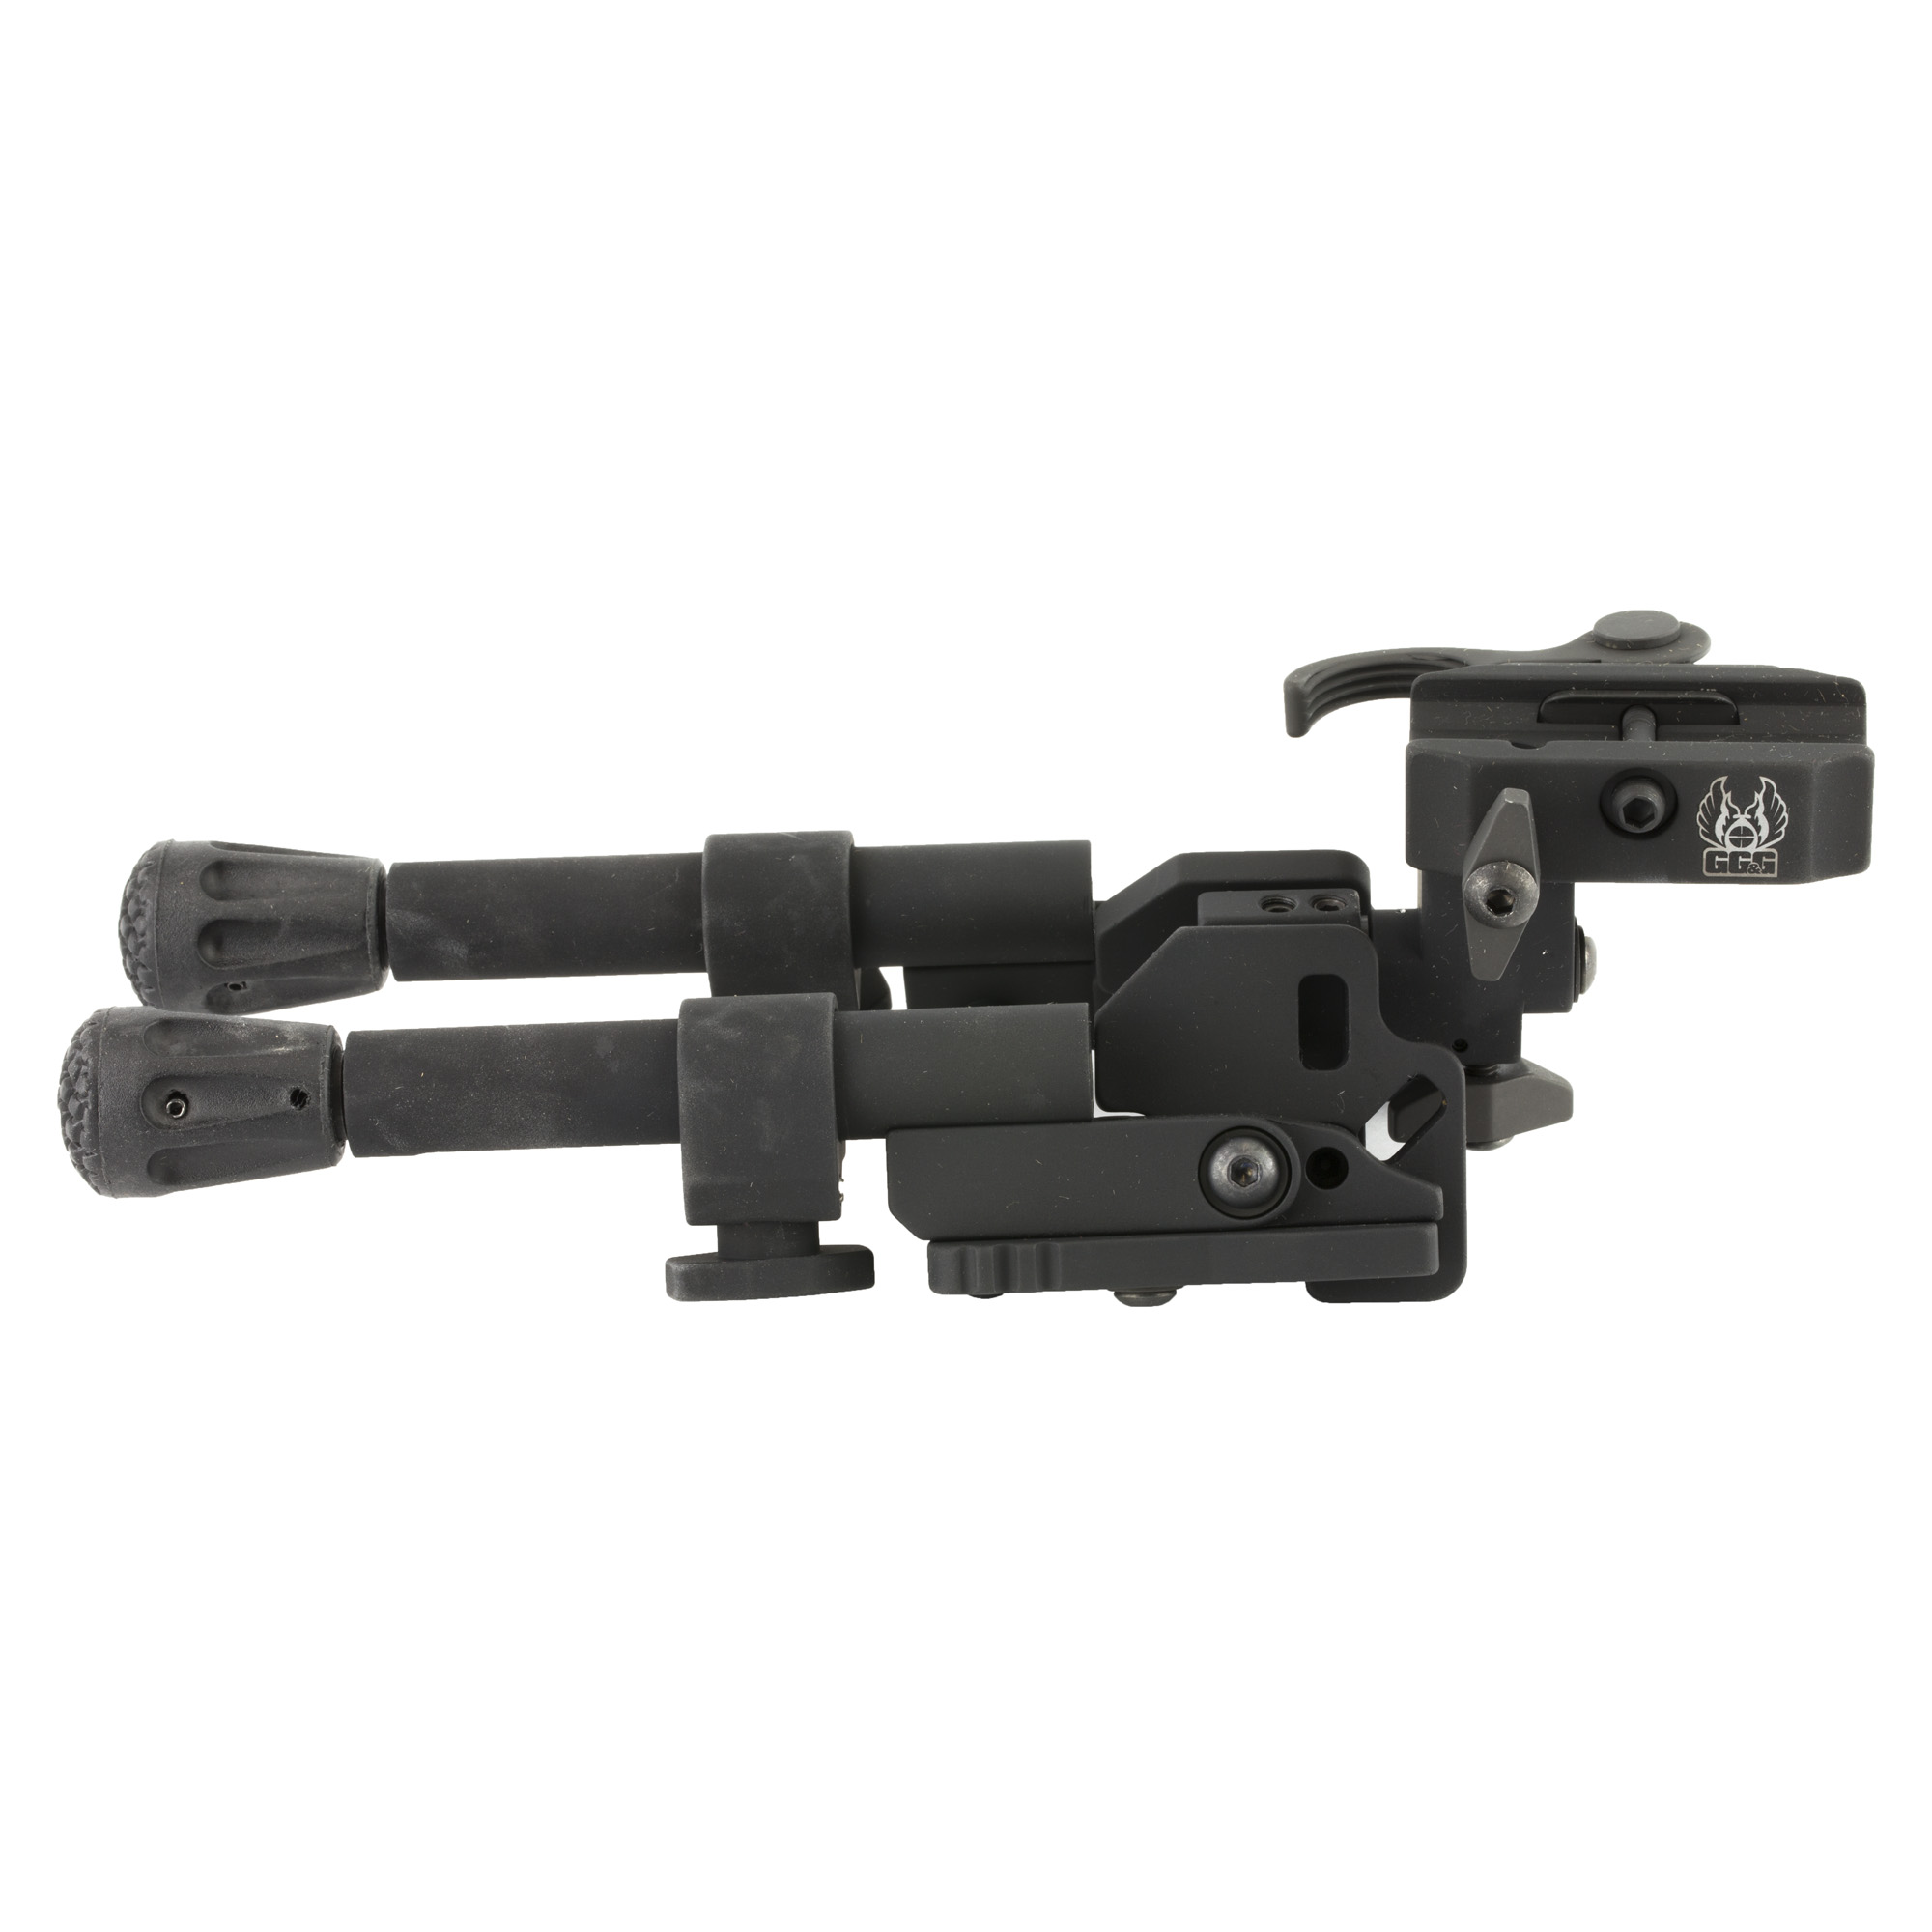 """GG&G's XDS-2C Quick Detach Tactical Bipod features lower positioning to accommodate shooting from the prone position or bench"""" a head that pans or swivels (20 degree degrees of panning capability to the left and right of the center position) a head that cants from side to side (25 degree degrees of canting capability each side of center)"""" bipod legs that lock forward at a 45- degree angle for difficult terrain"""" and durable grippy rubber feet that grip more surfaces and are replaceable. In addition"""" we designed and manufactured the Quick Detach XDS-2C to accommodate the M14"""" AR-10"""" AR-30 and other large caliber rifles and carbines. When the Tactical Bipod legs are deployed and locked in the straight down position they can be independently adjusted from 7"""" to 8 1/2""""."""